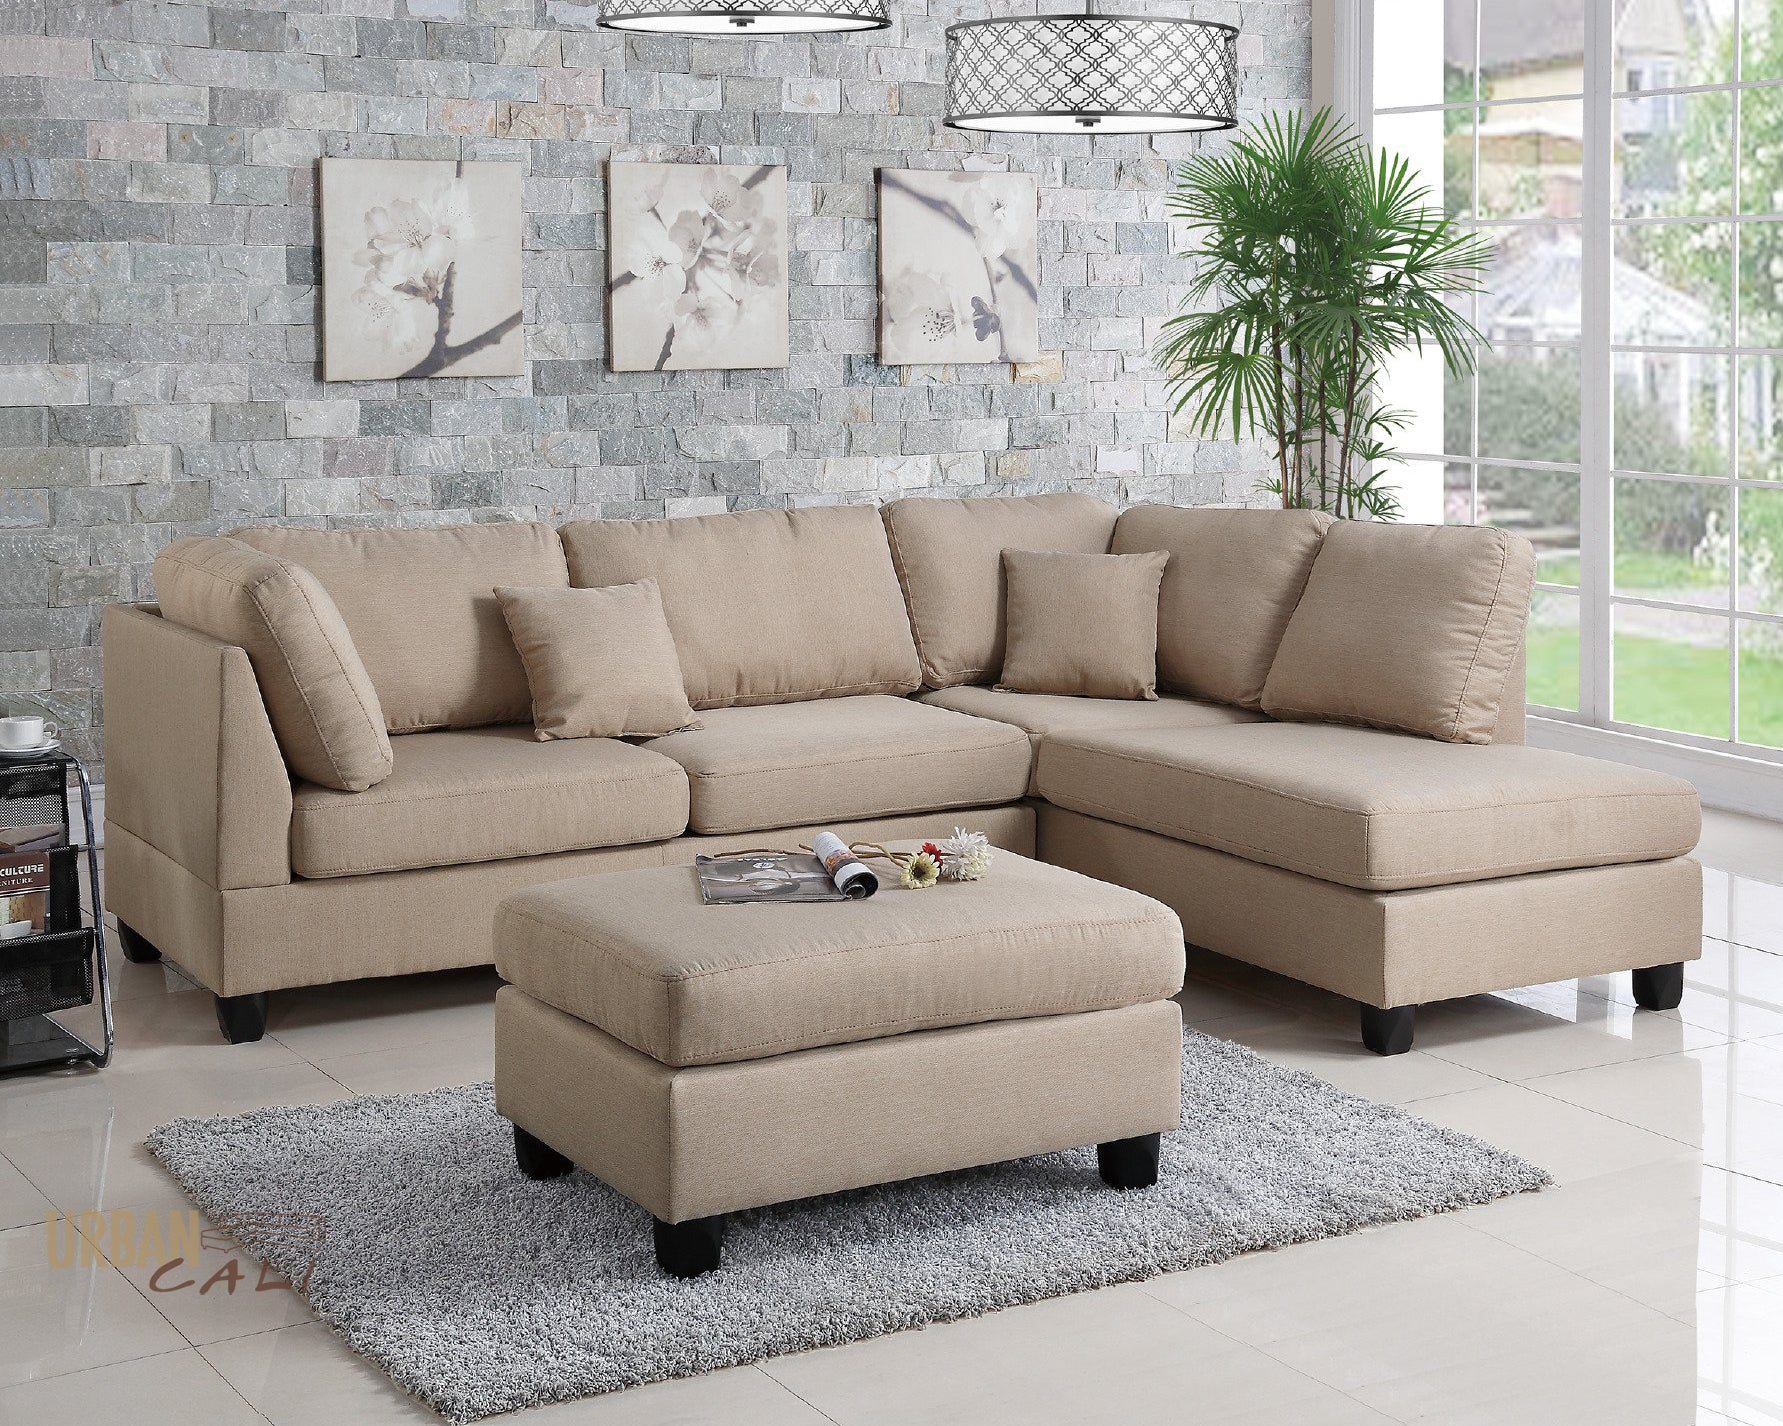 Merveilleux San Francisco Sand Linen Sectional Sofa With Reversible Chaise